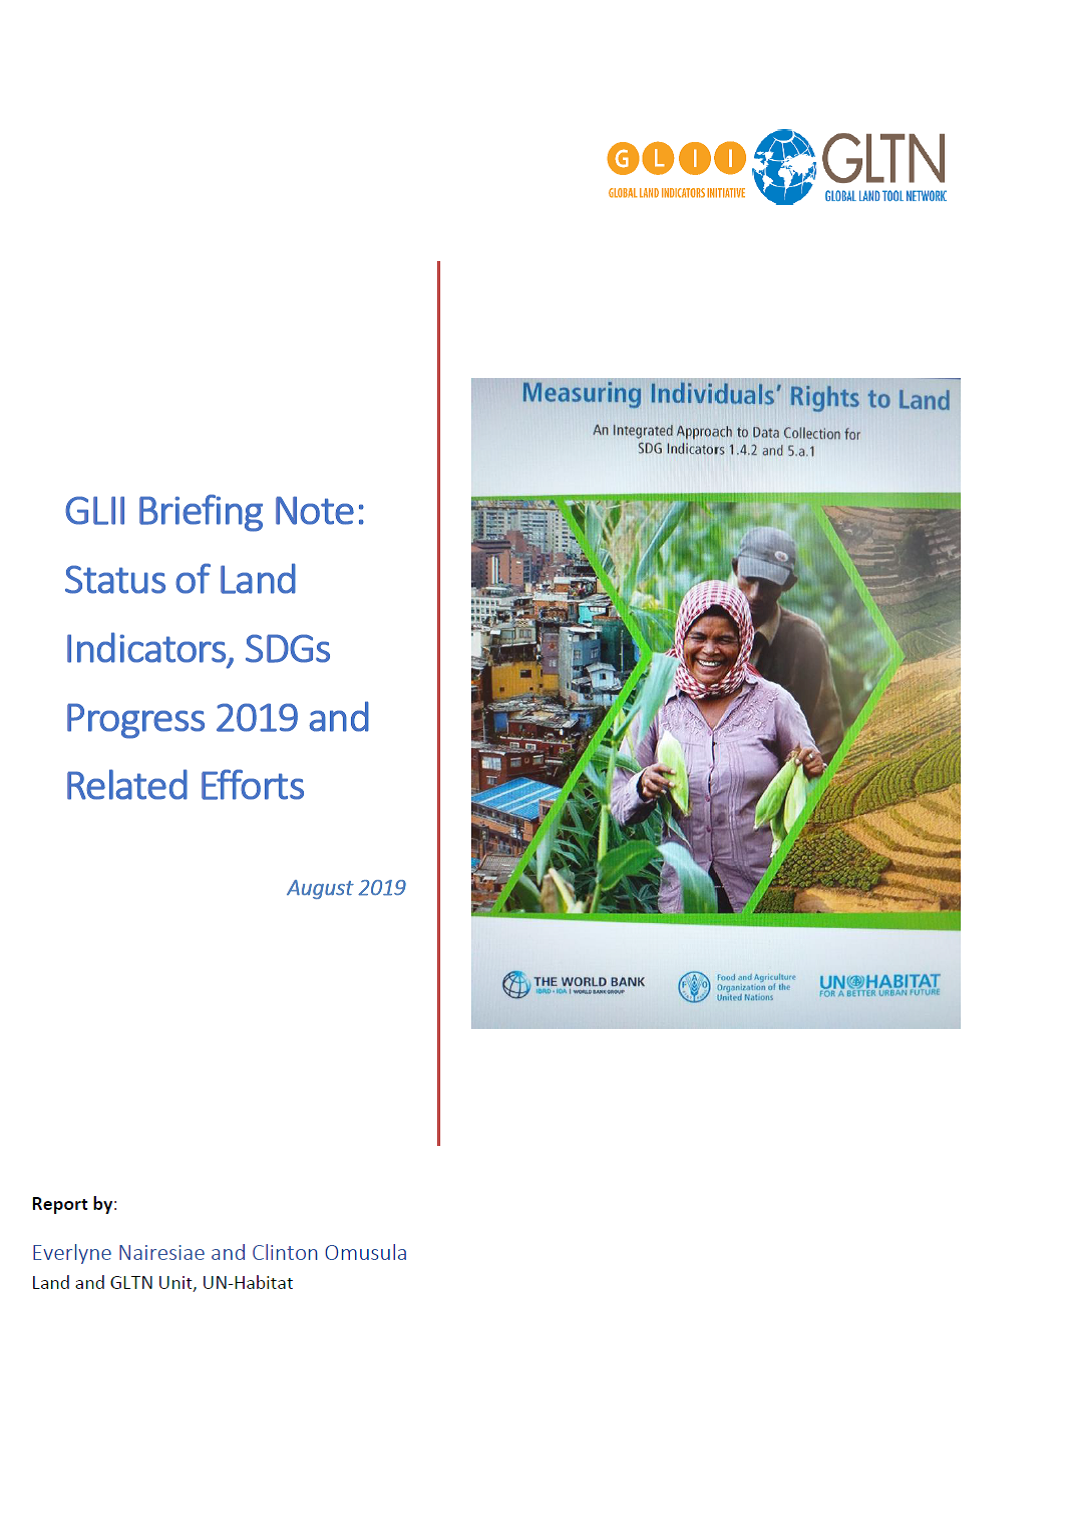 GLII Briefing Note: Status of Land Indicators, SDGs Progress 2019 and Related Efforts